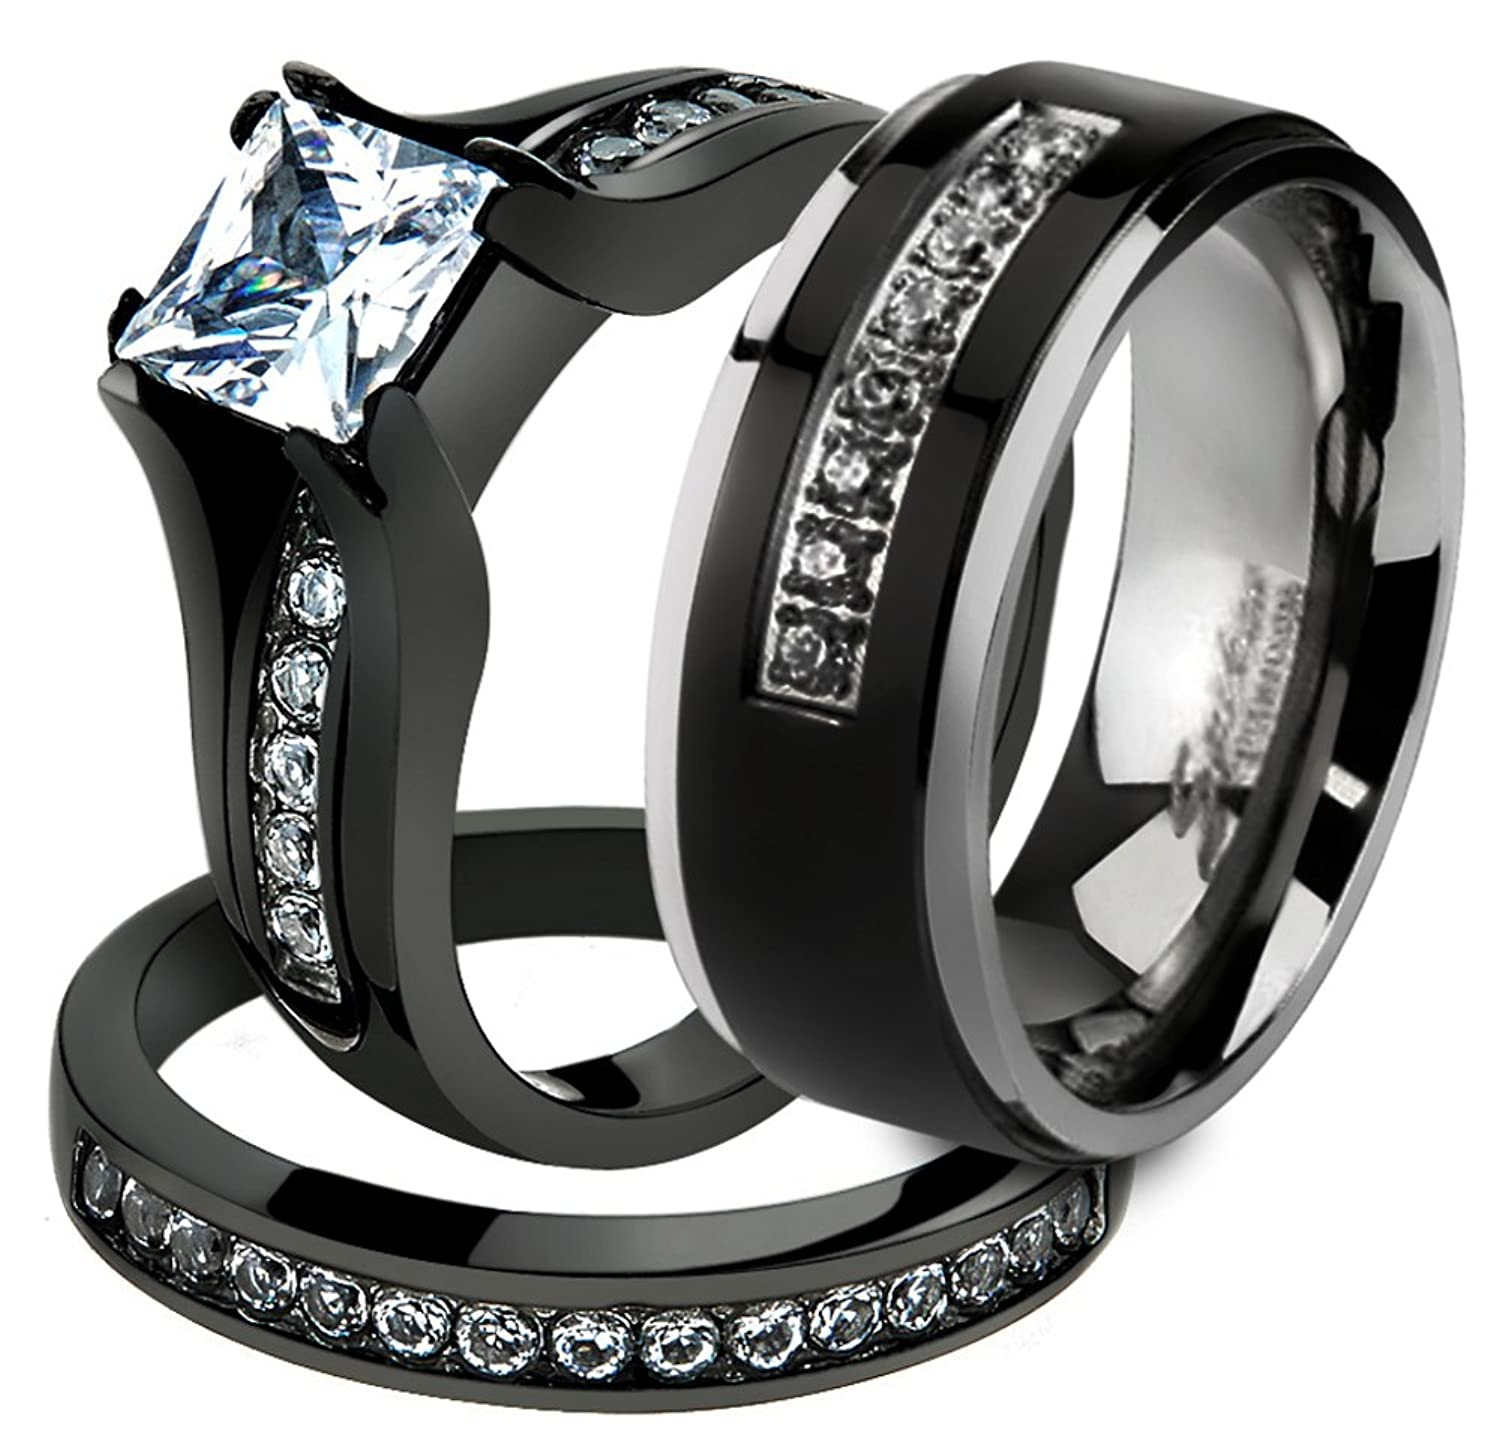 Amazon.com: Her U0026 His 3 Pc Black Stainless Steel Engagement Wedding Ring  Set U0026 Titanium Band Size Womenu0027s 05 Menu0027s 09: Jewelry Awesome Design